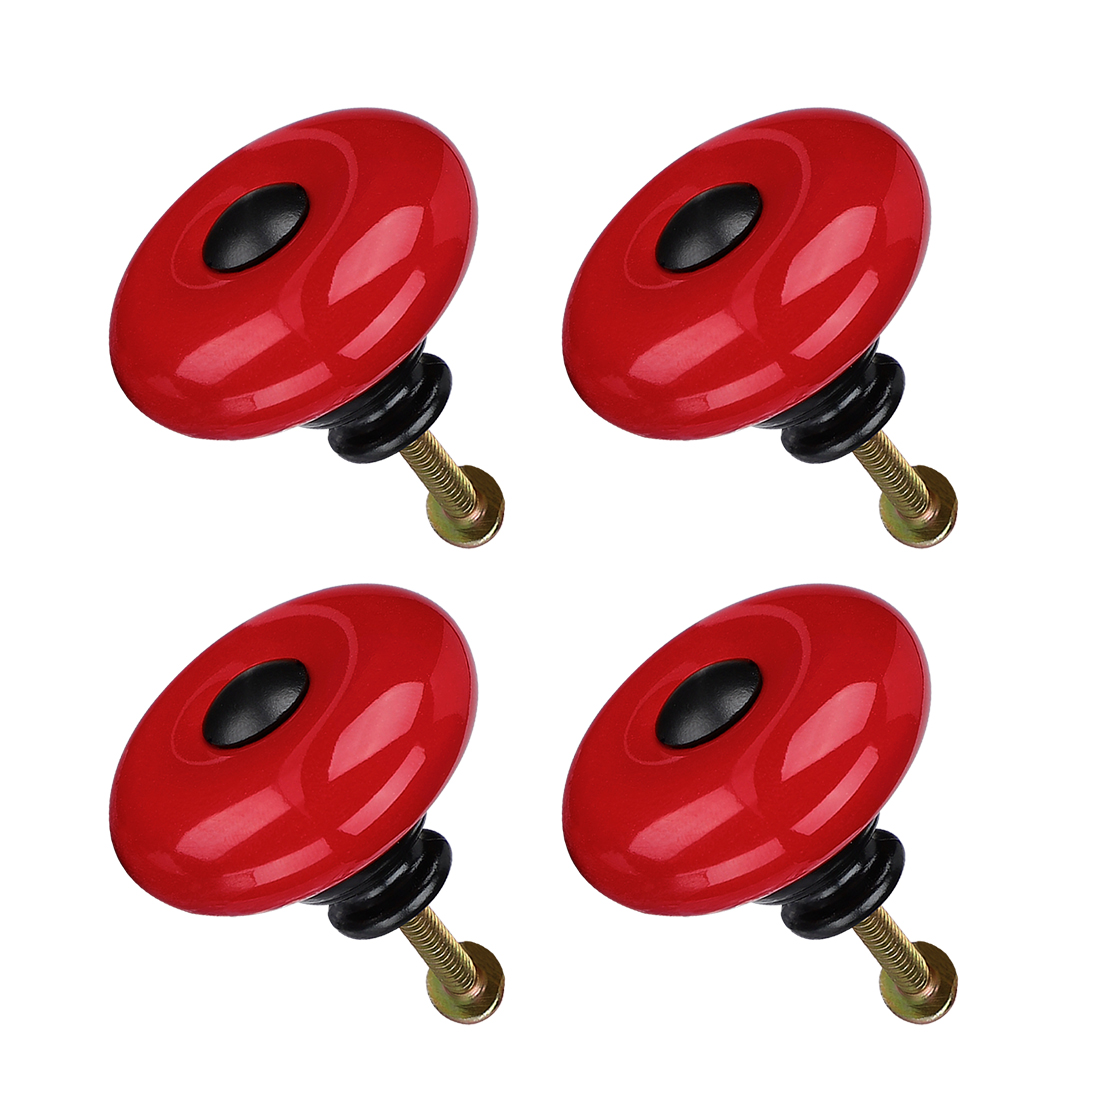 Ceramic Knob Handle Wood Dresser Wardrobe Cabinet Accessory 32mm Dia 4pcs Red